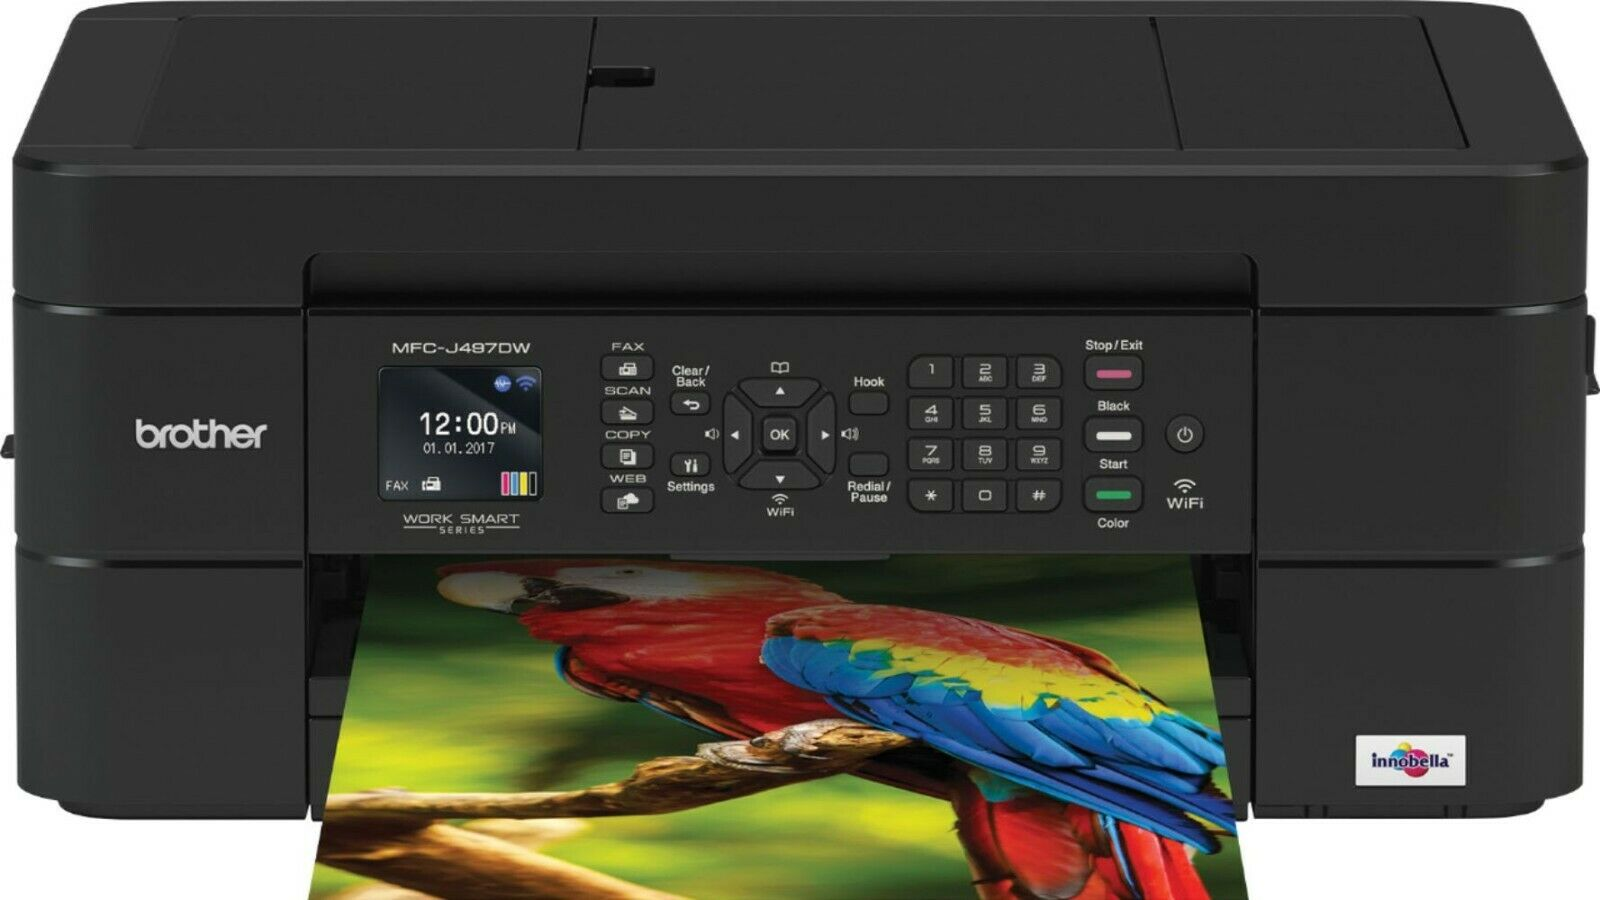 New Brother Work Smart Series MFC-J497DW All-In-One Printer Fast Shipping